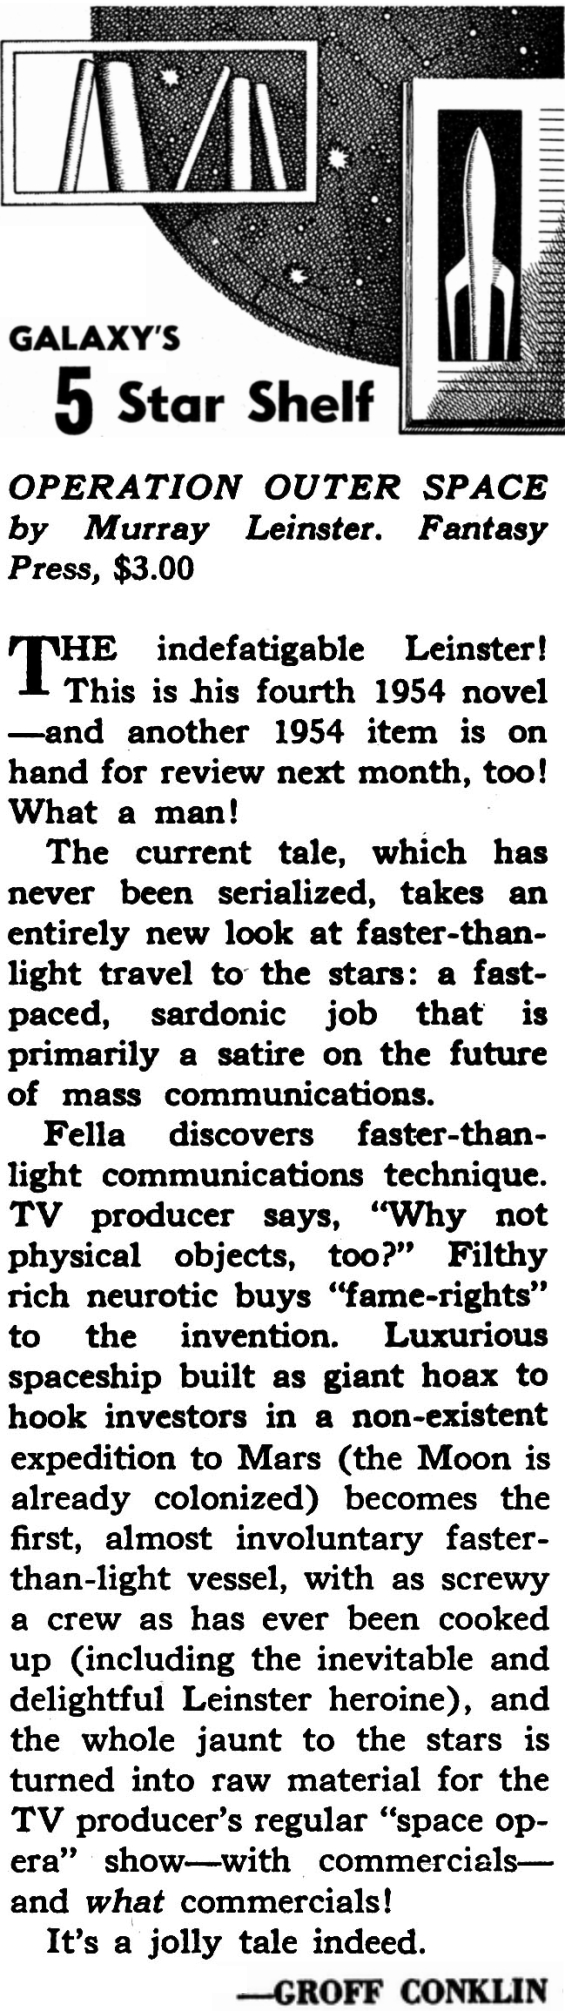 Groff Conklin's review of Operation: Outer Space from Galaxy Magazine's March 1955 issue